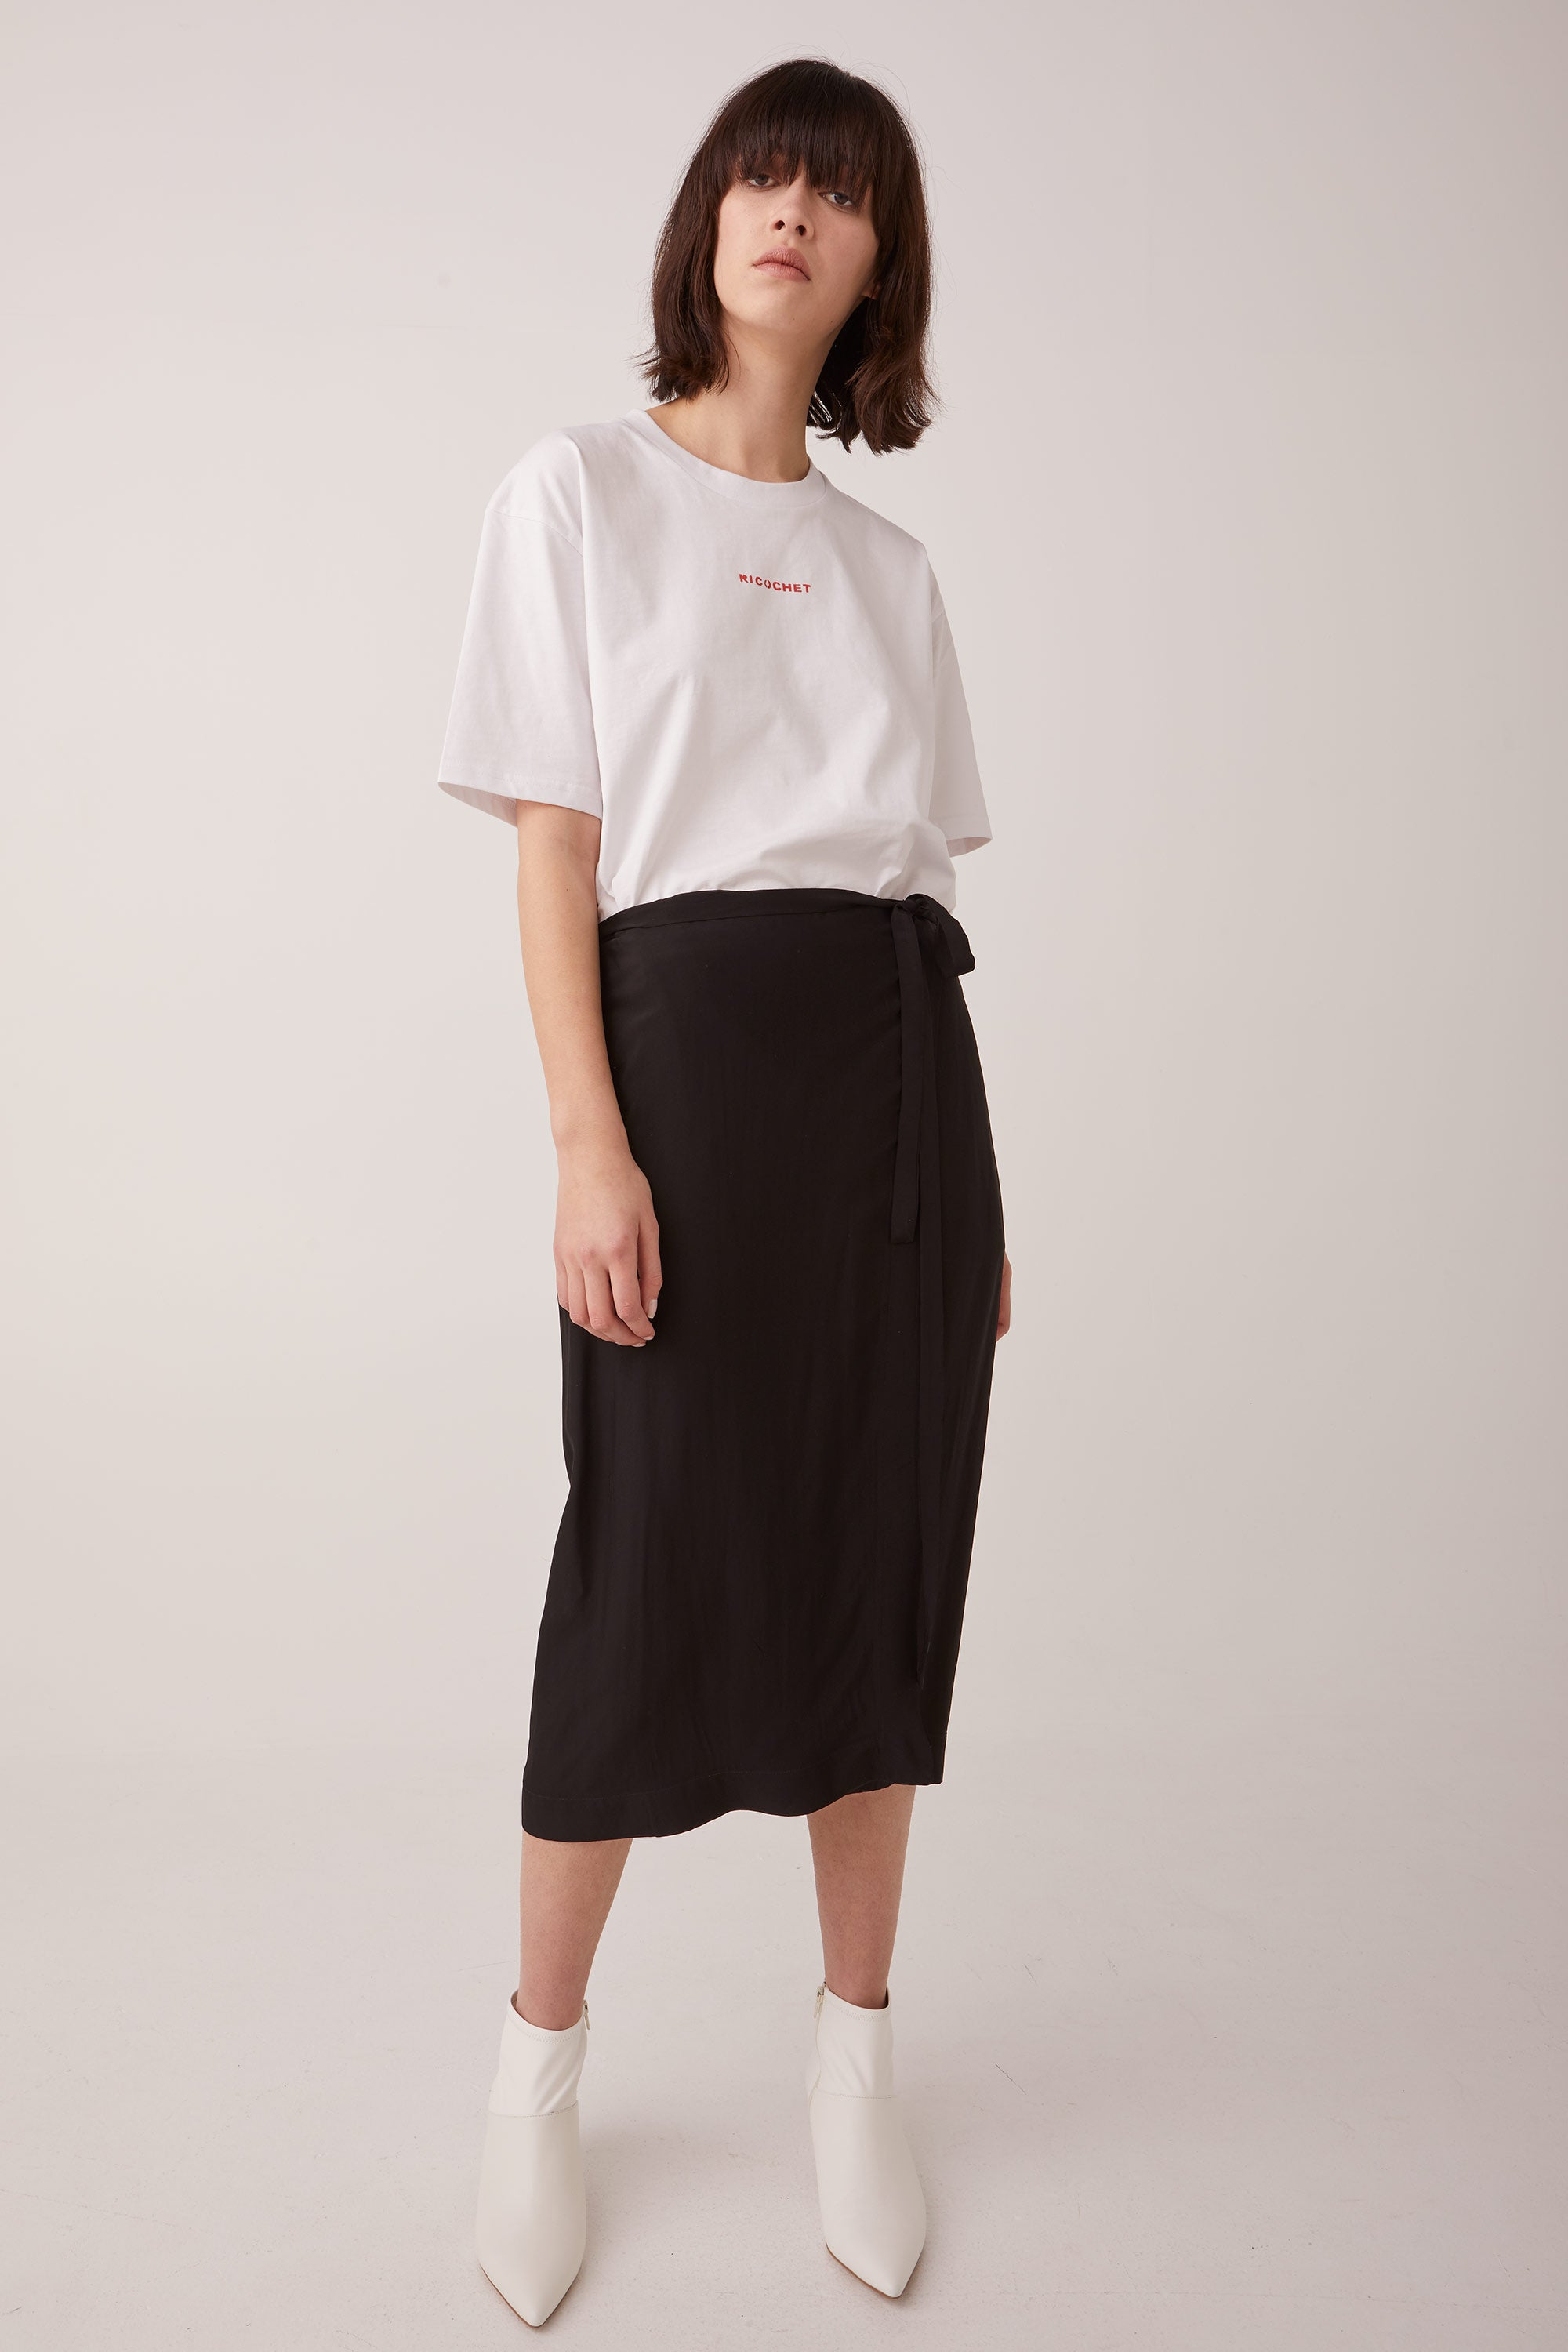 Ricochet NZ Fashion Designer Clothing AW18 Black Crepe Wrap Skirt Eyelets with Ties Samurai Wrapskirt Made in NZ